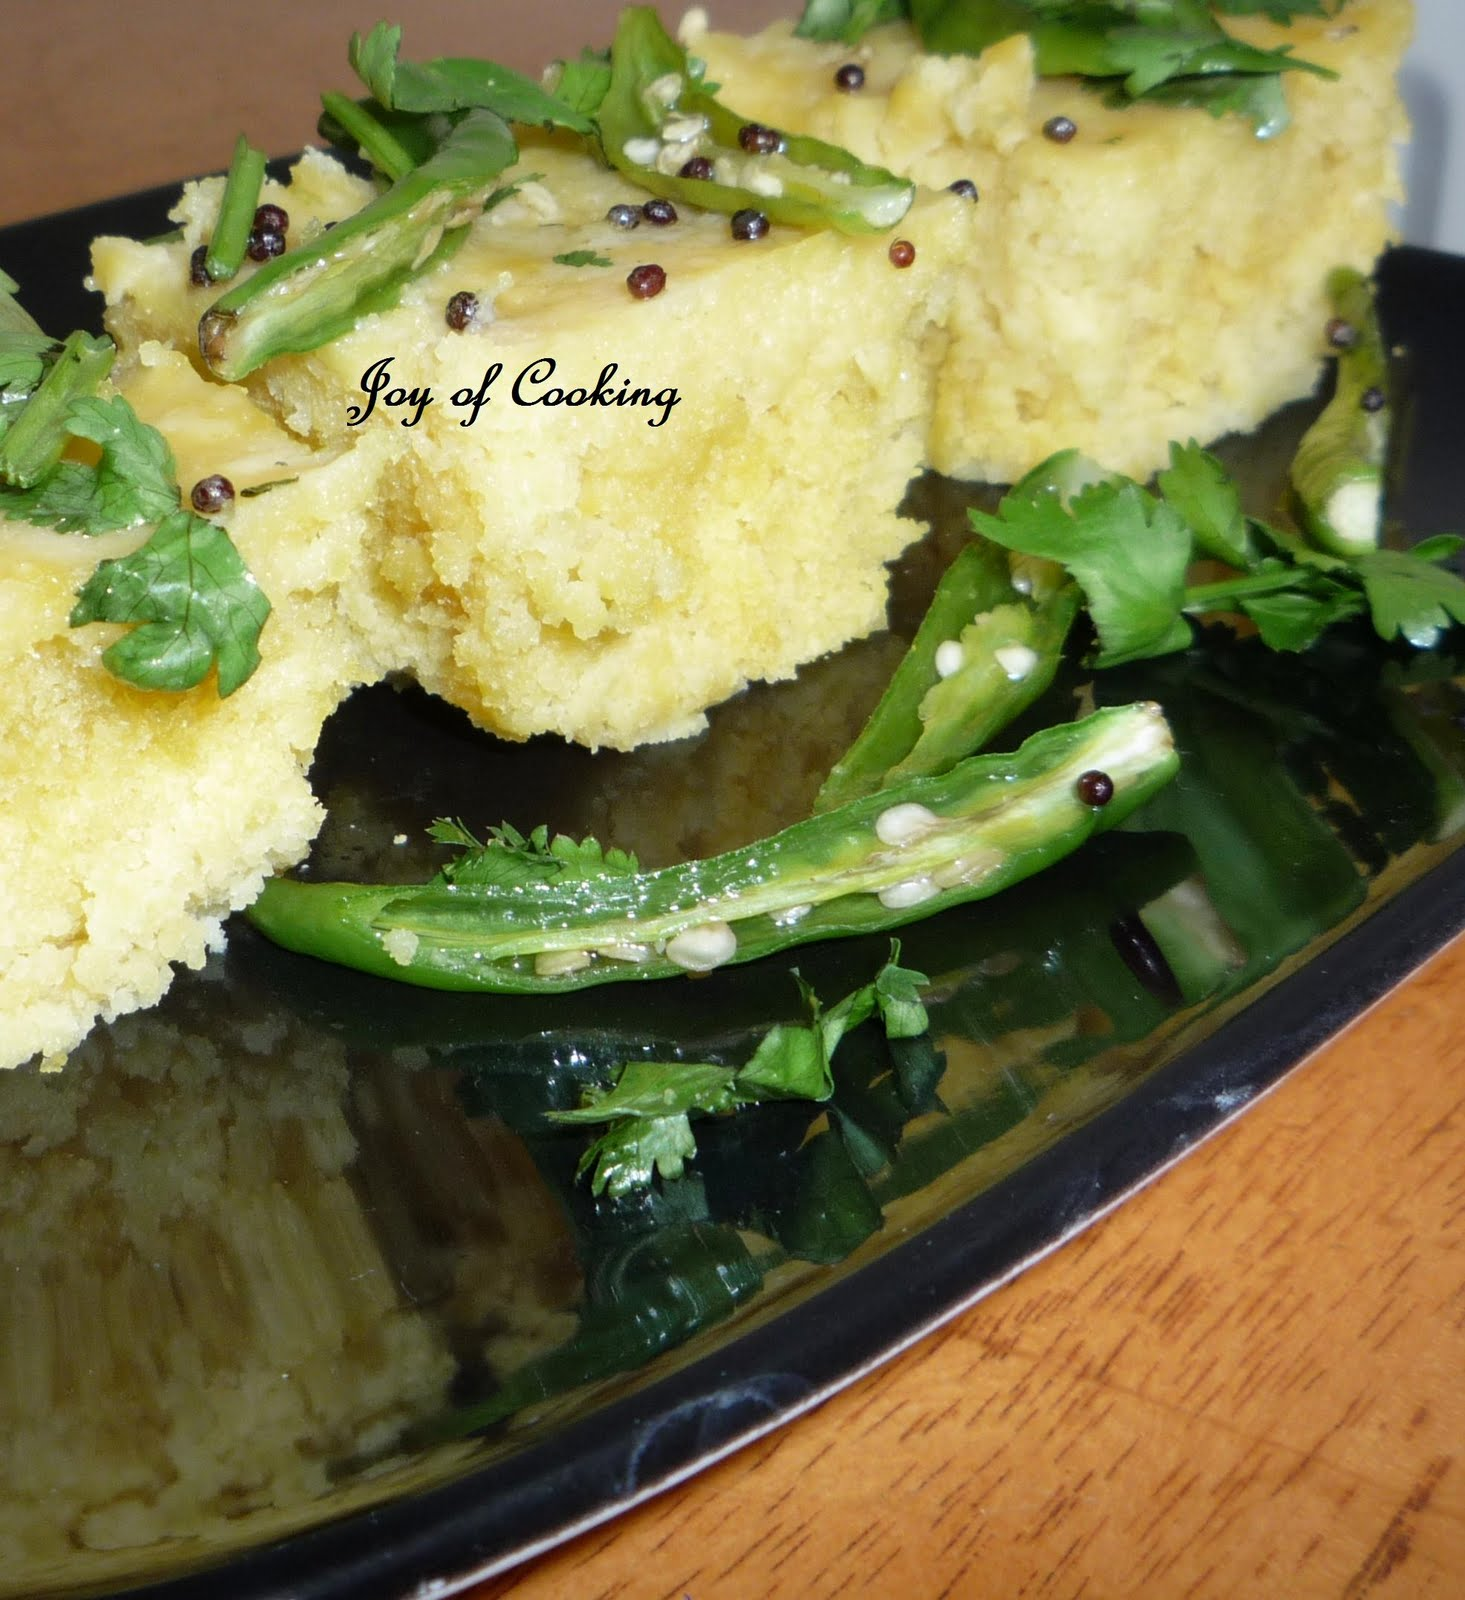 Jagrutis cooking odyssey khaman dhokla savoury gramflour cakes today one of my bloggywood friend told me she loves gujarati food and loves to make at home tooe asked if i have khaman dhokla recipe on my blogd forumfinder Image collections